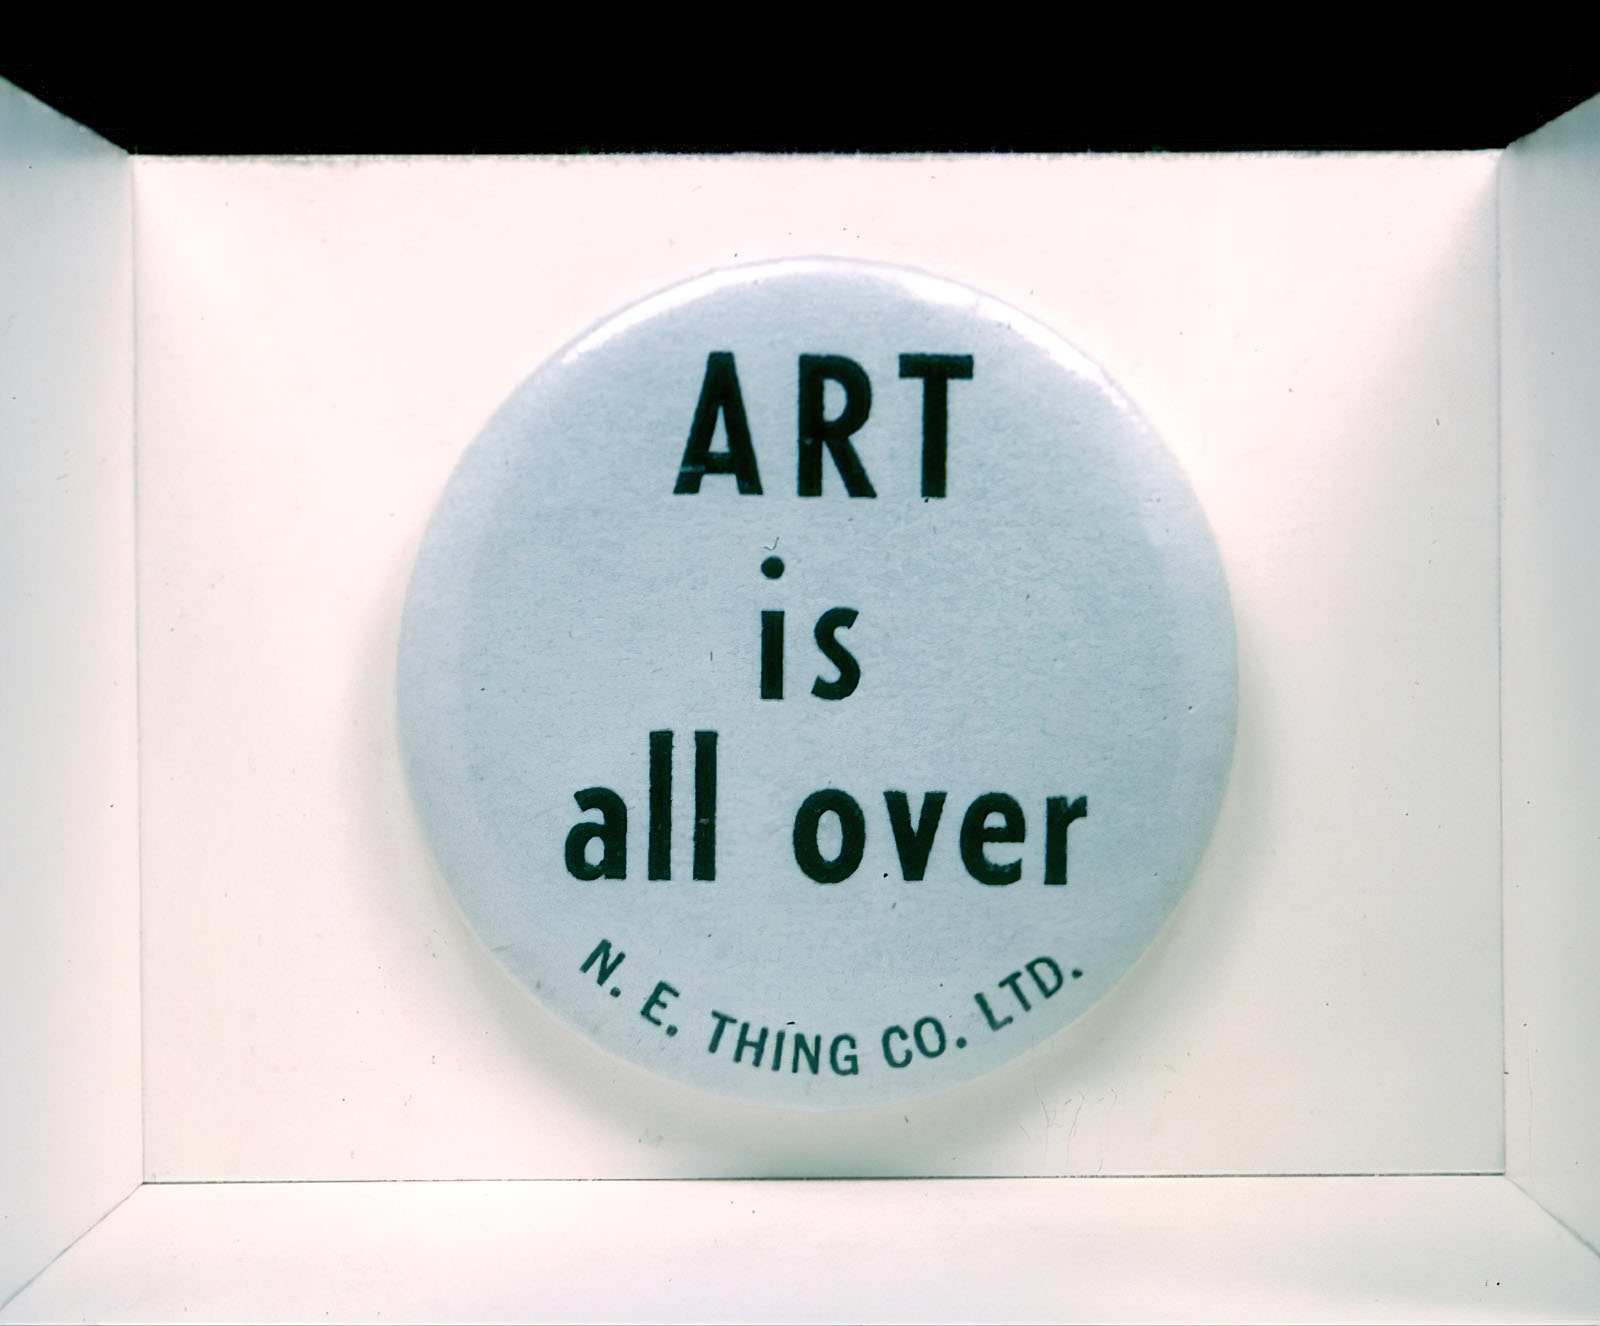 N.E. Thing Co. Ltd. (Iain Baxter) - Art is all over